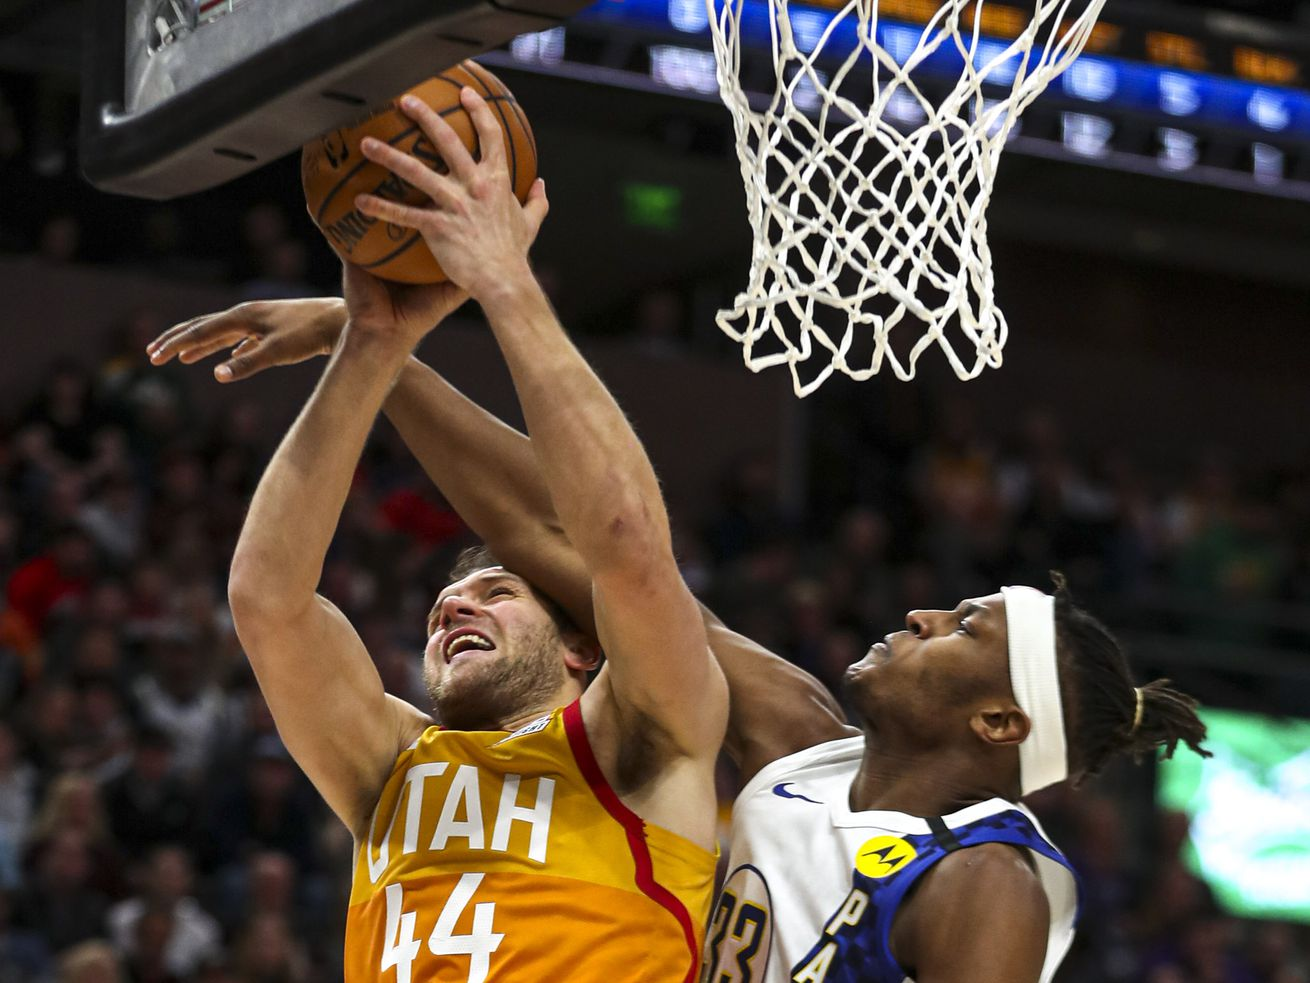 Utah Jazz finally play a good team, dominate Indiana Pacers by 30